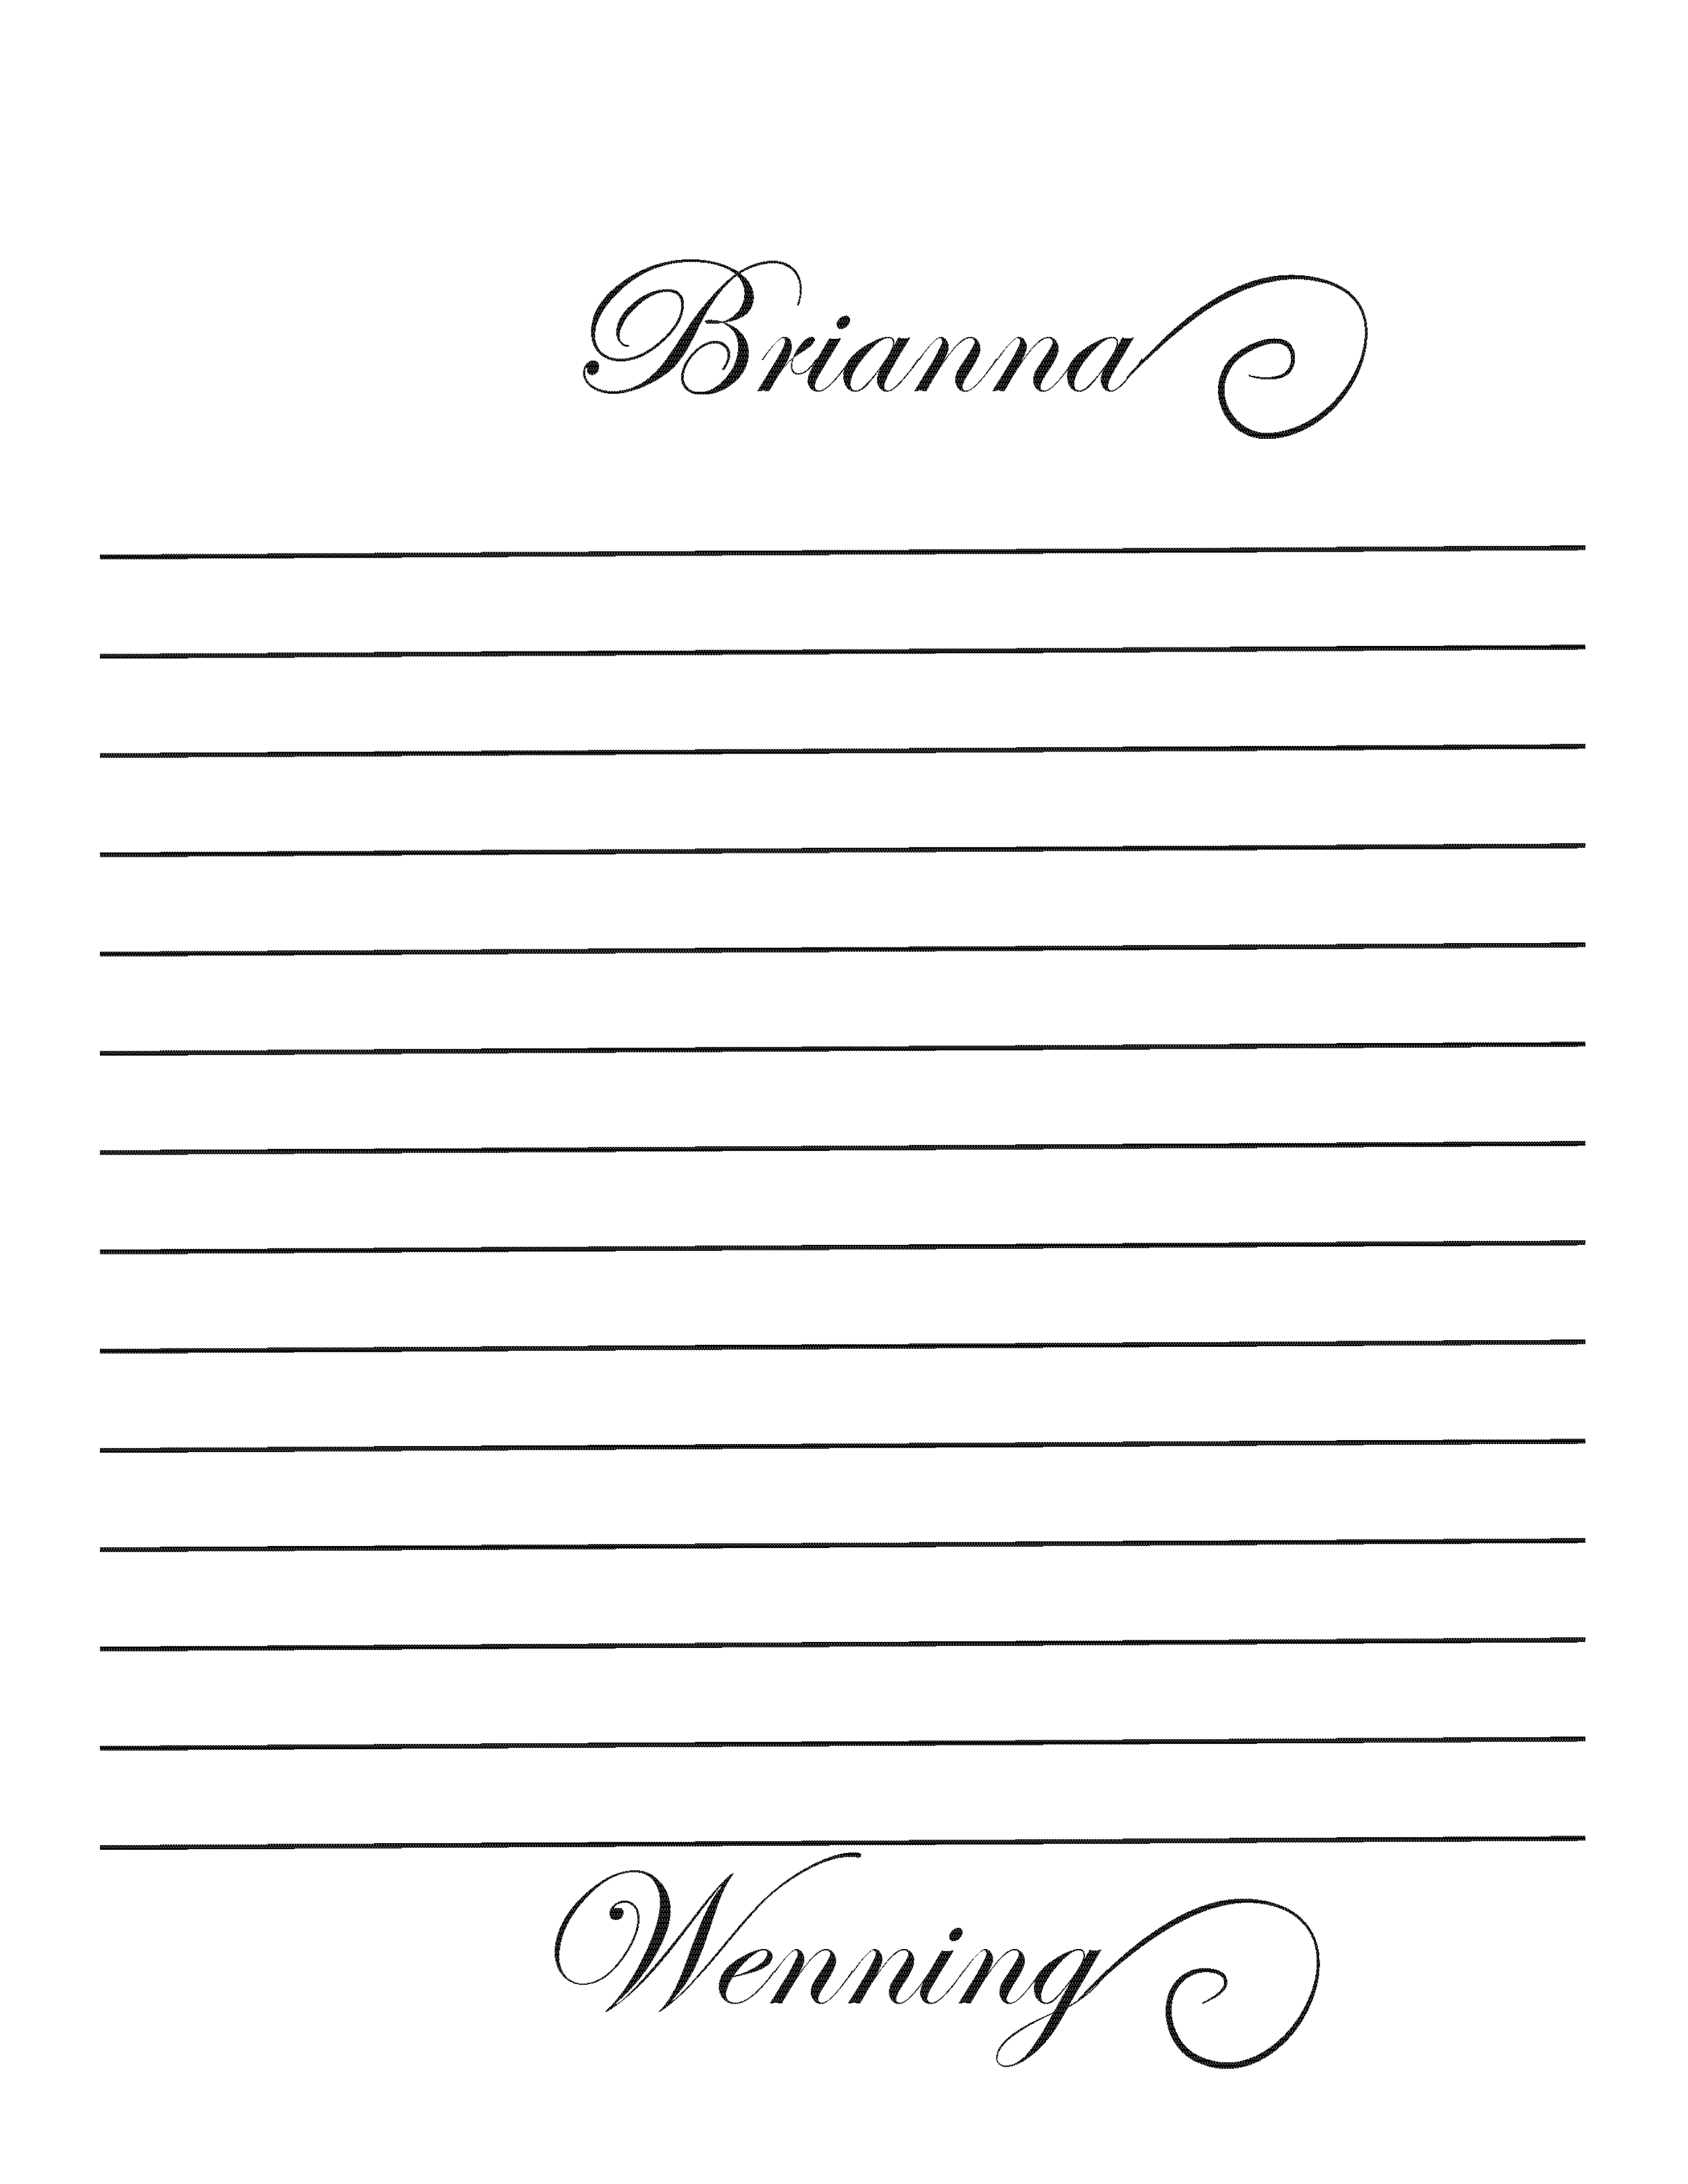 Wenning-notepad-4.png